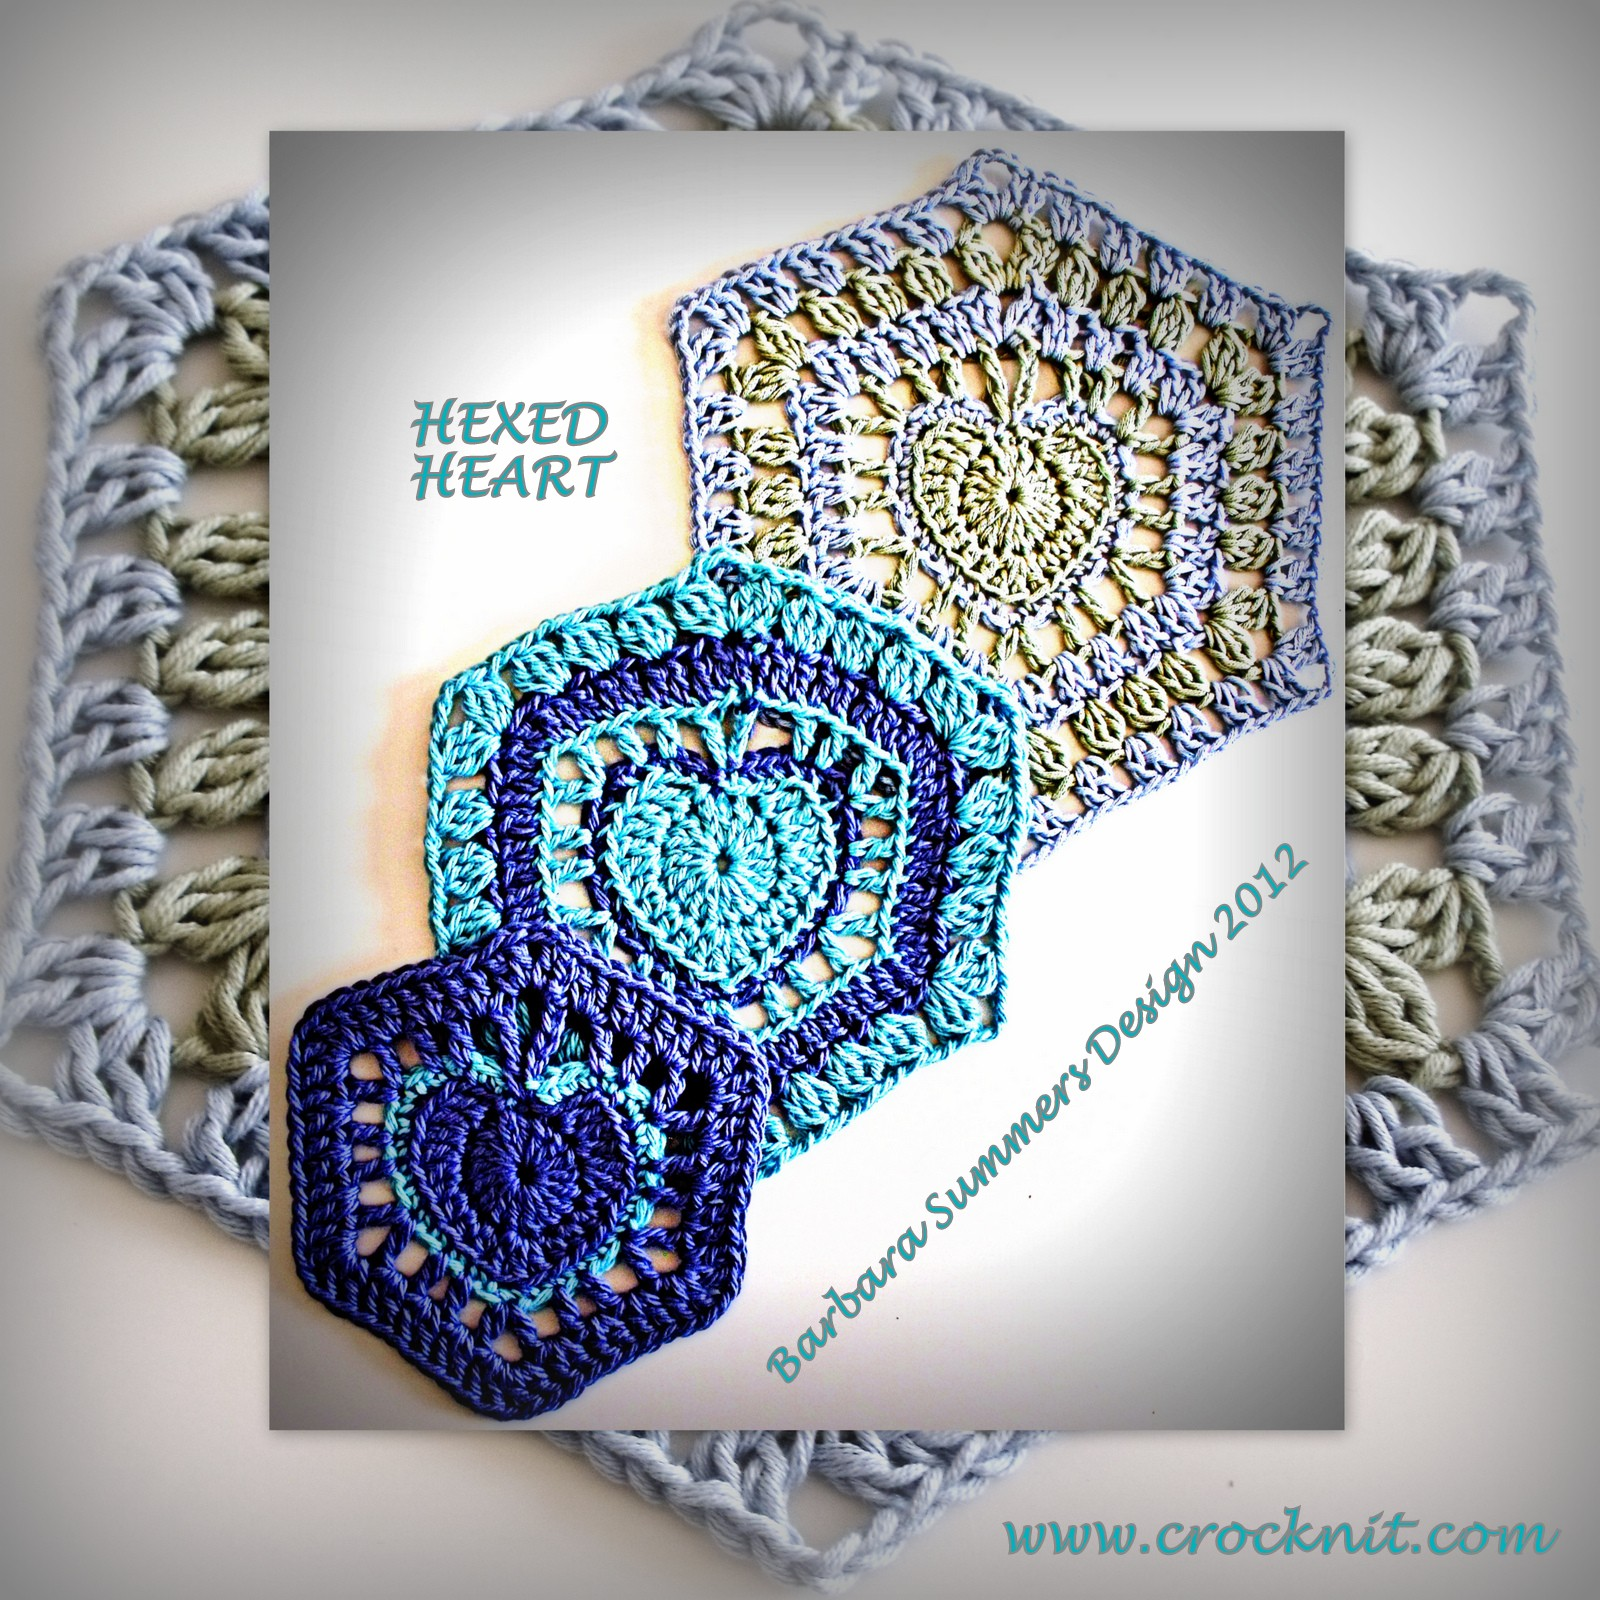 Microcknit creations my perfect heart is hexed crochet patterns how to crochet hearts hearts afghans granny square hearts bankloansurffo Choice Image